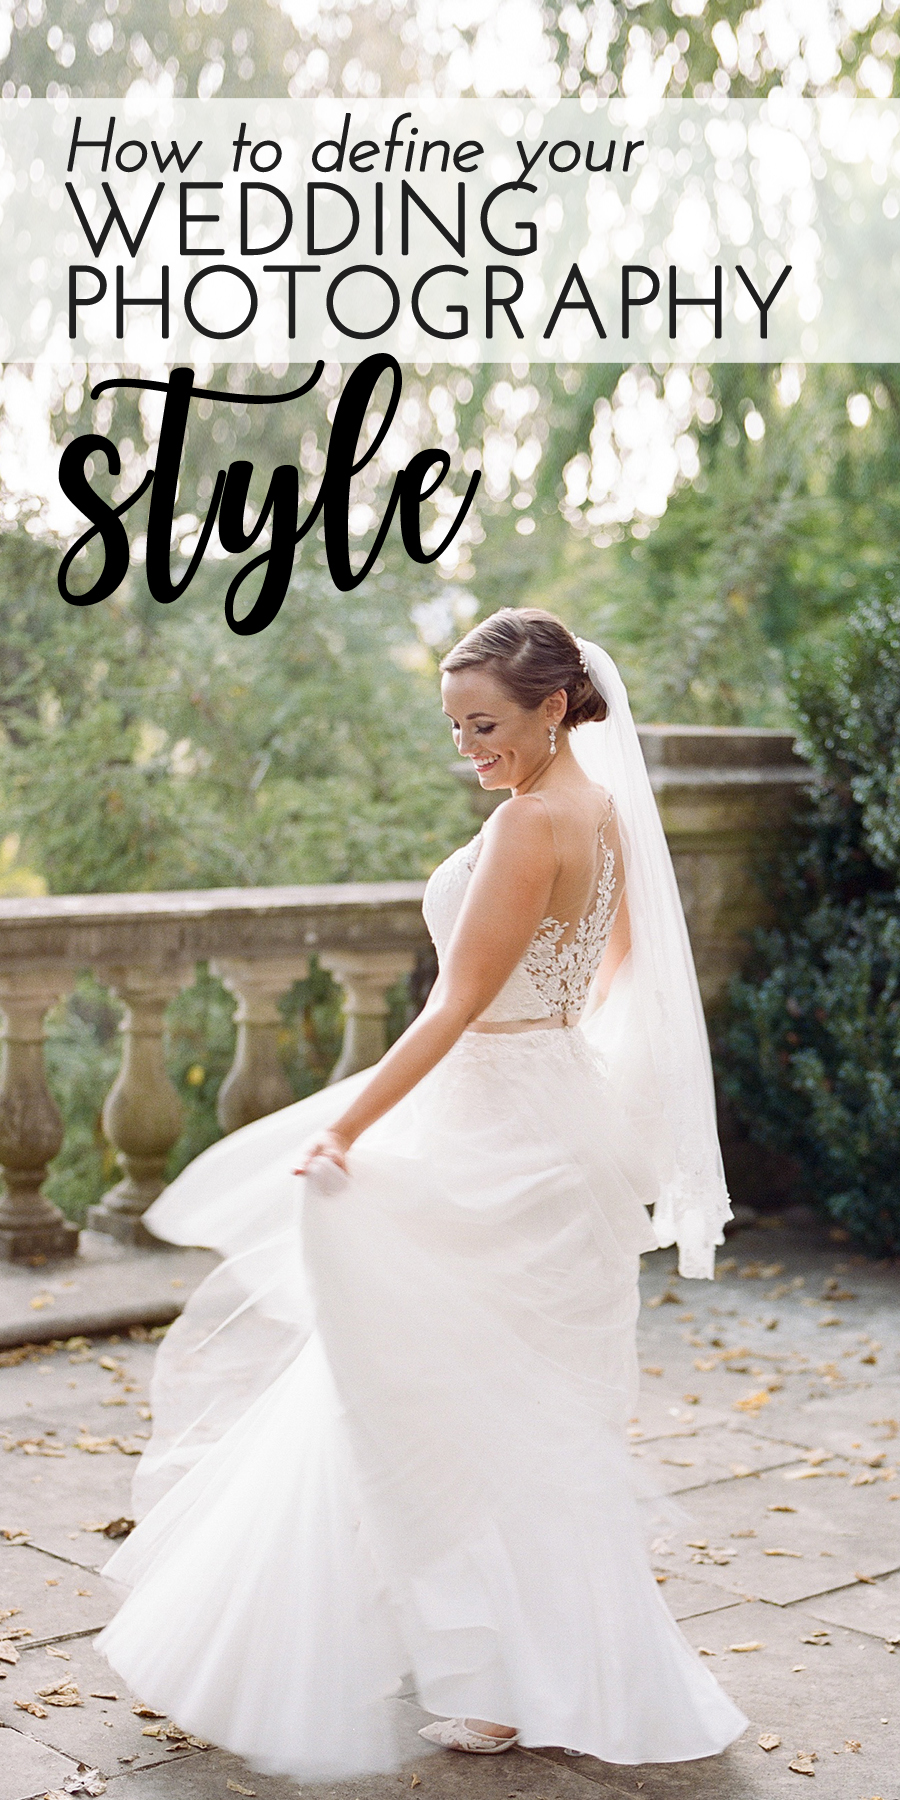 How to define your wedding photography style